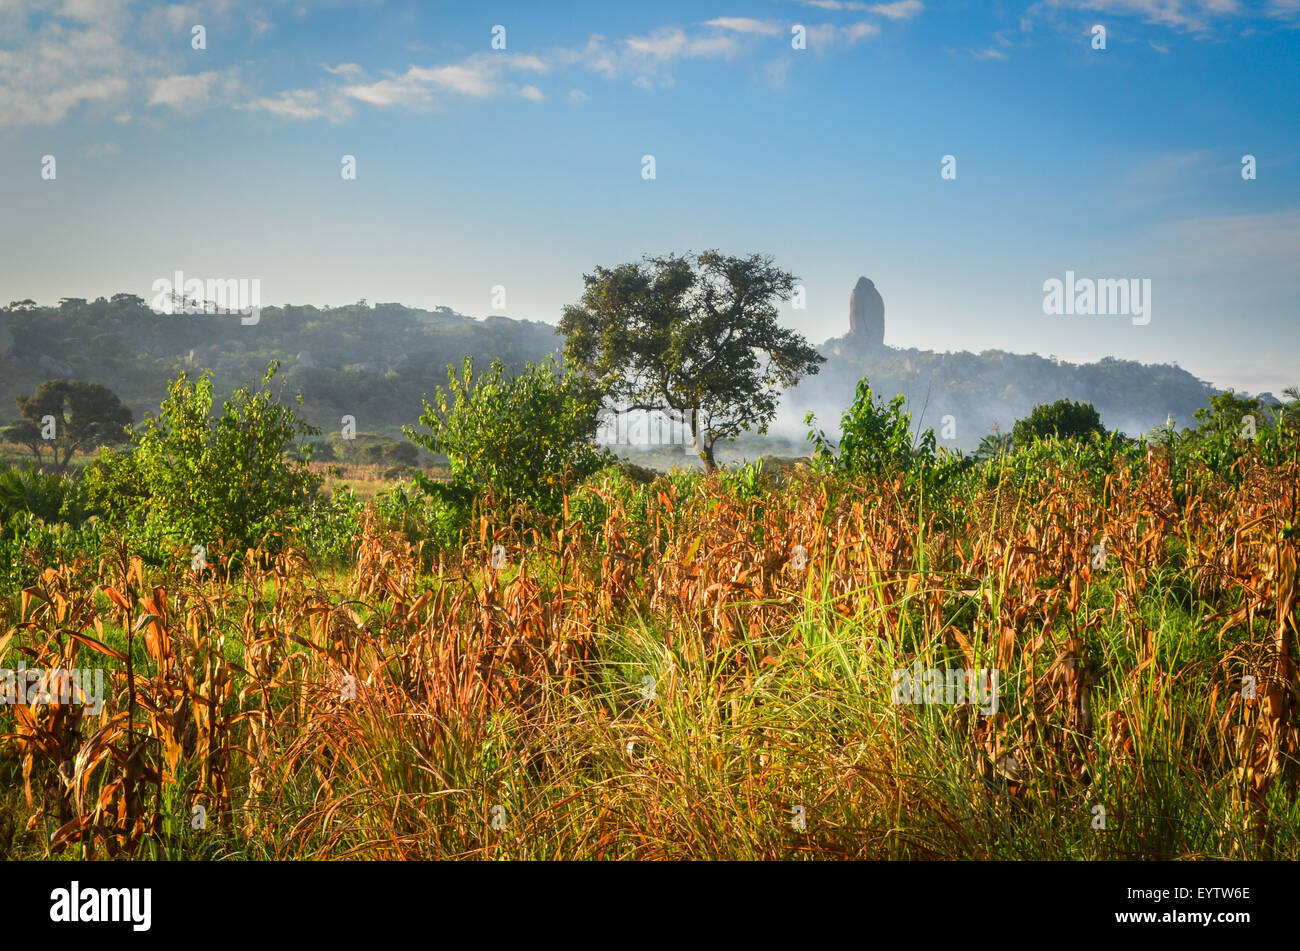 Corn (maize) fields in the Cuanza Sul province of Angola at sunrise - Stock Image